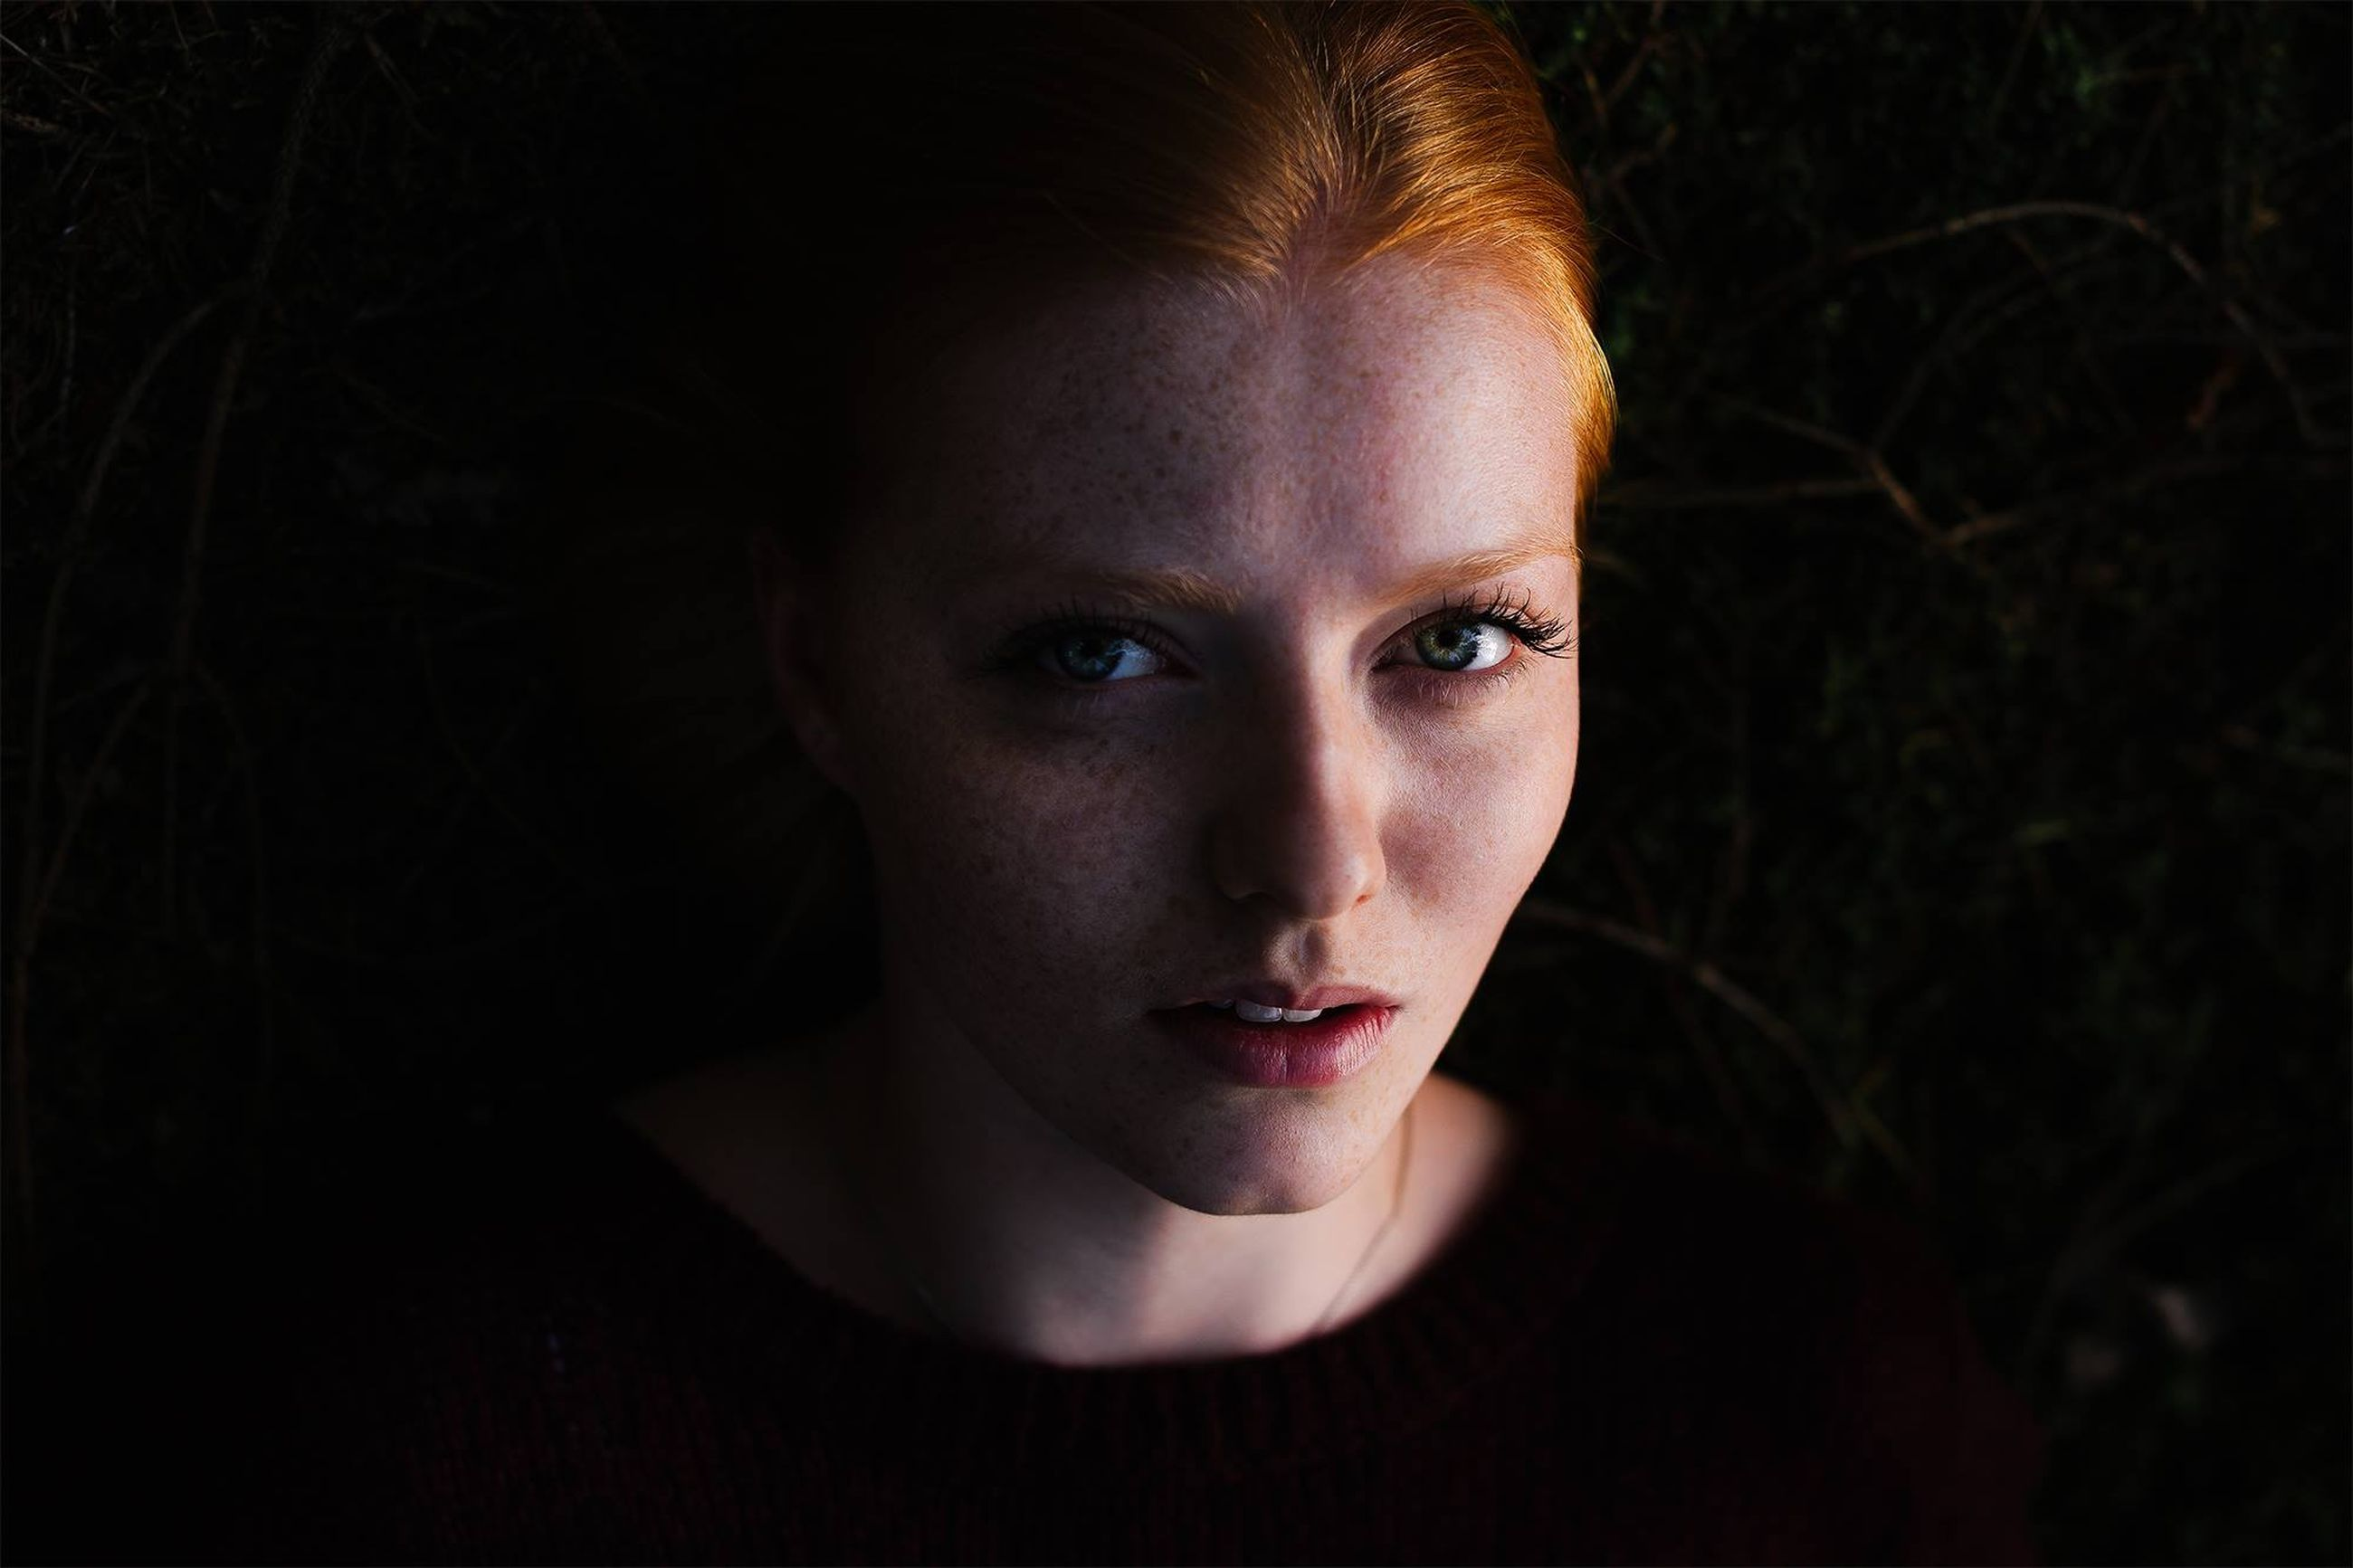 portrait, looking at camera, headshot, close-up, young adult, person, front view, human face, serious, studio shot, black background, indoors, lifestyles, contemplation, head and shoulders, staring, young women